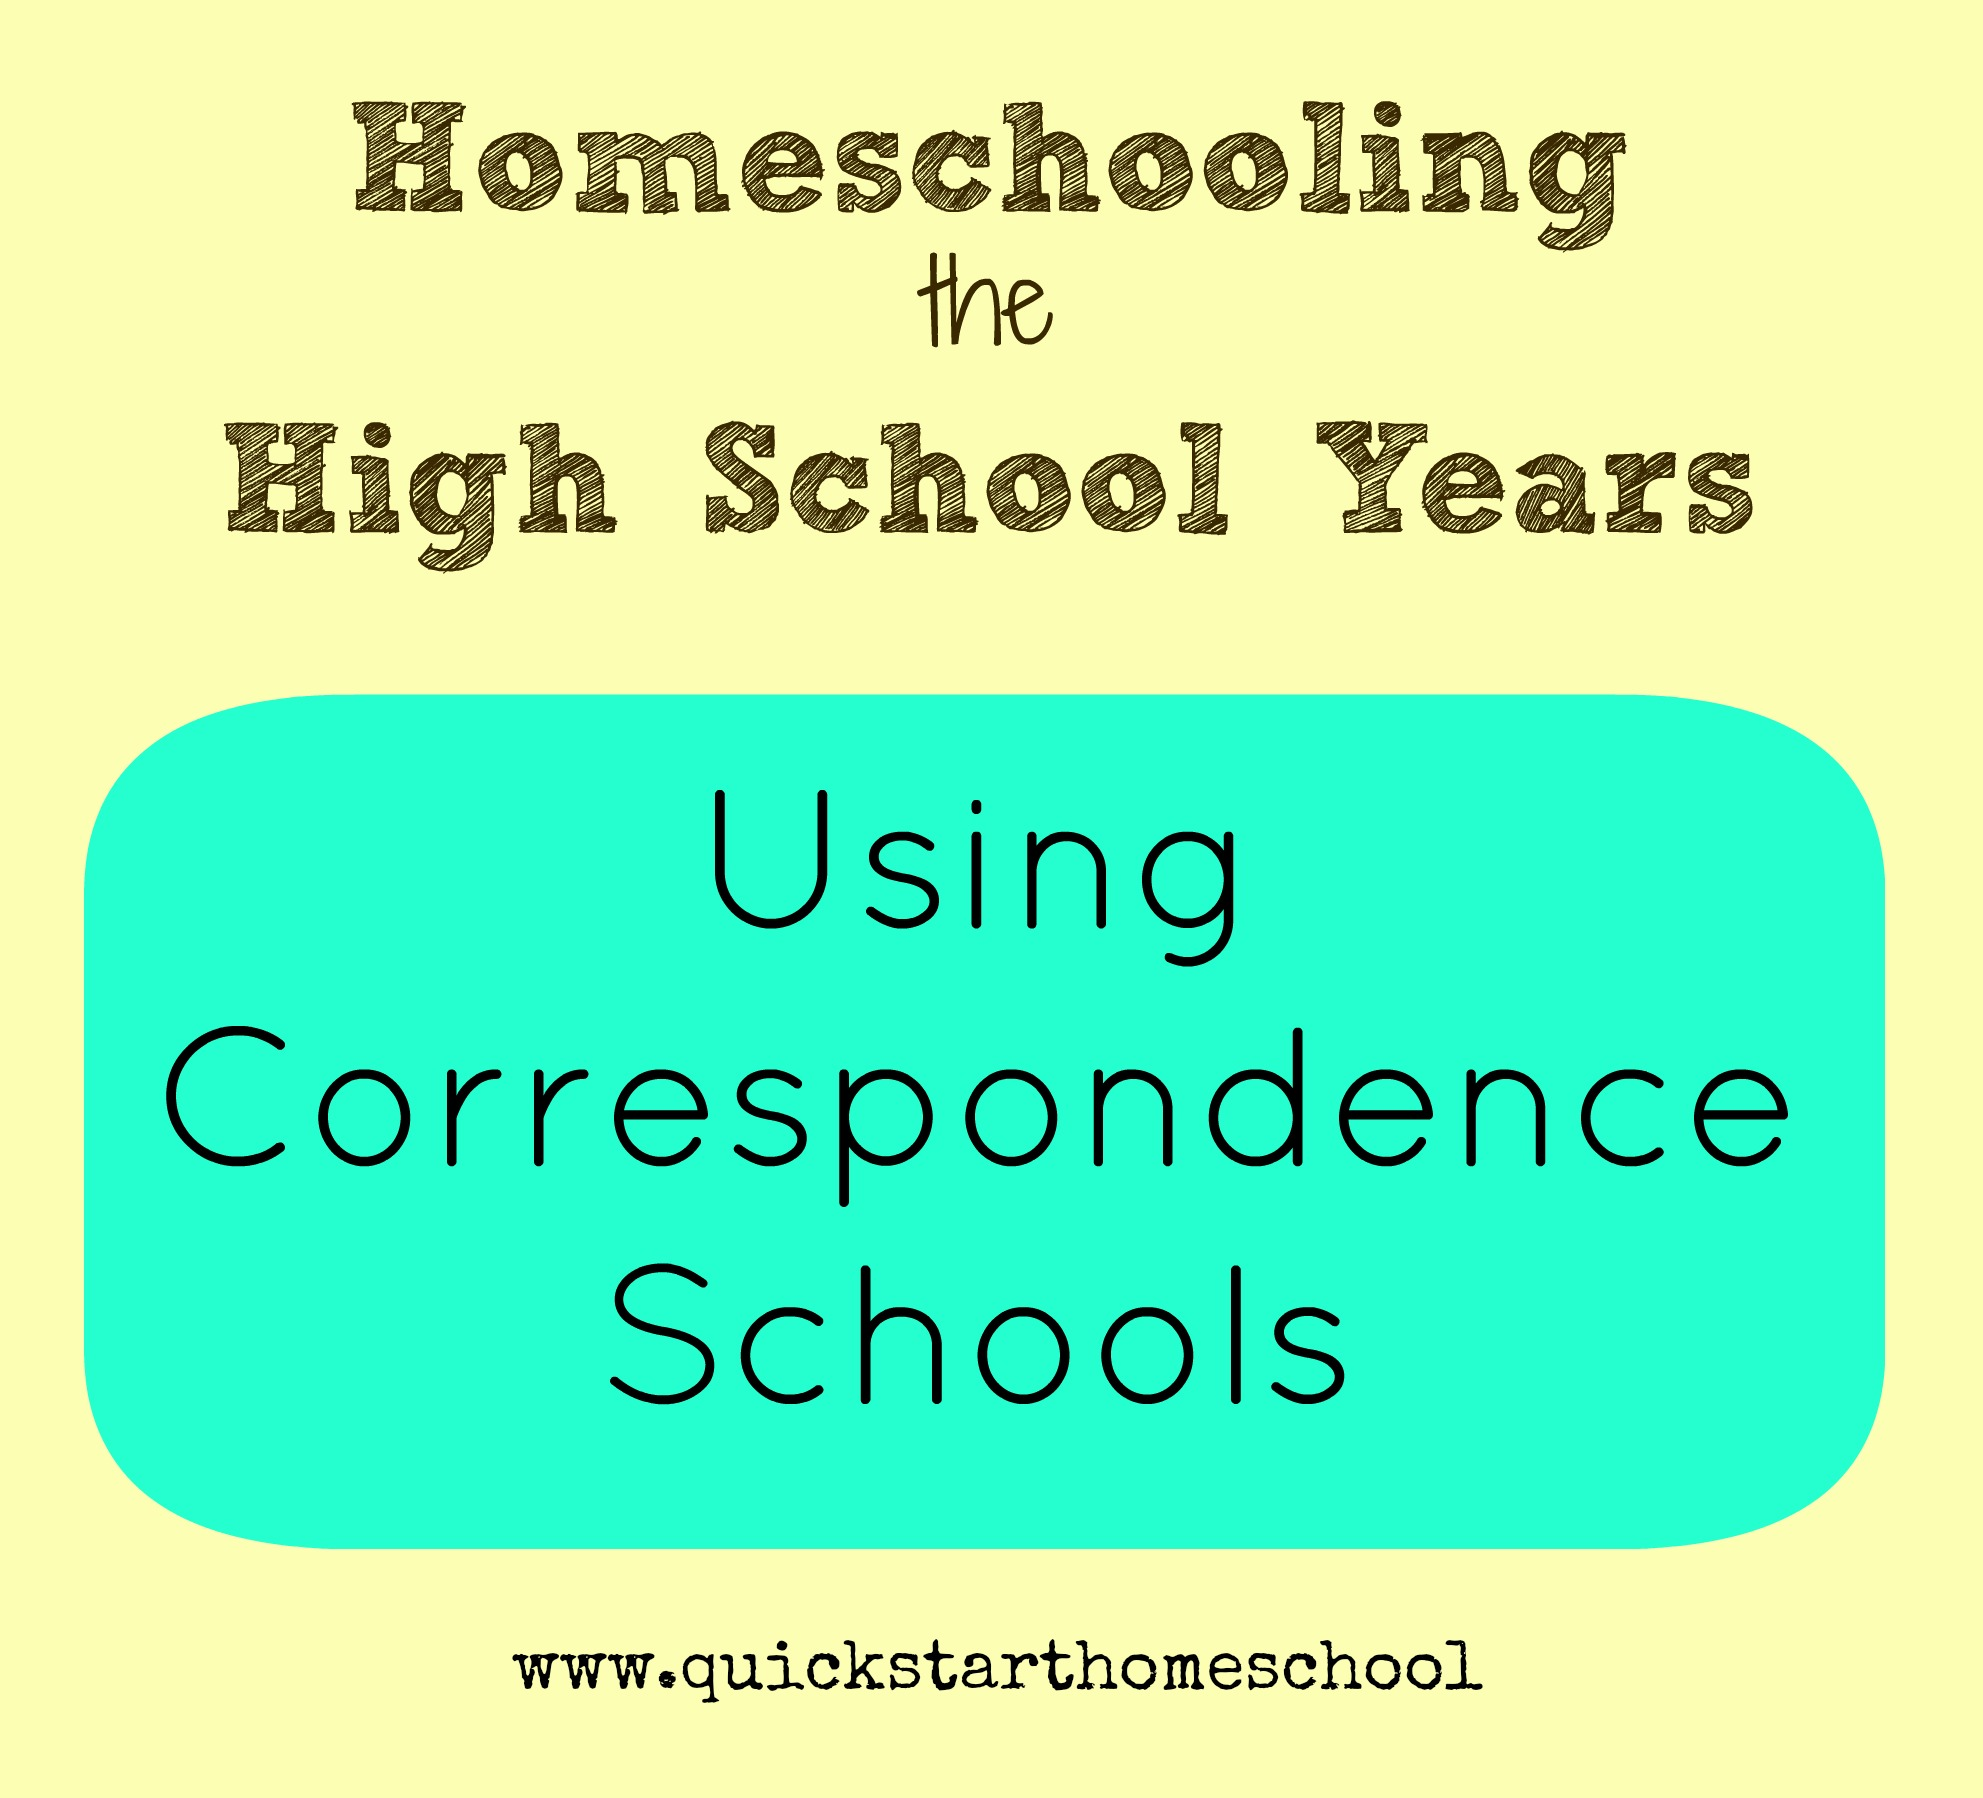 Using correspondence schools for high school